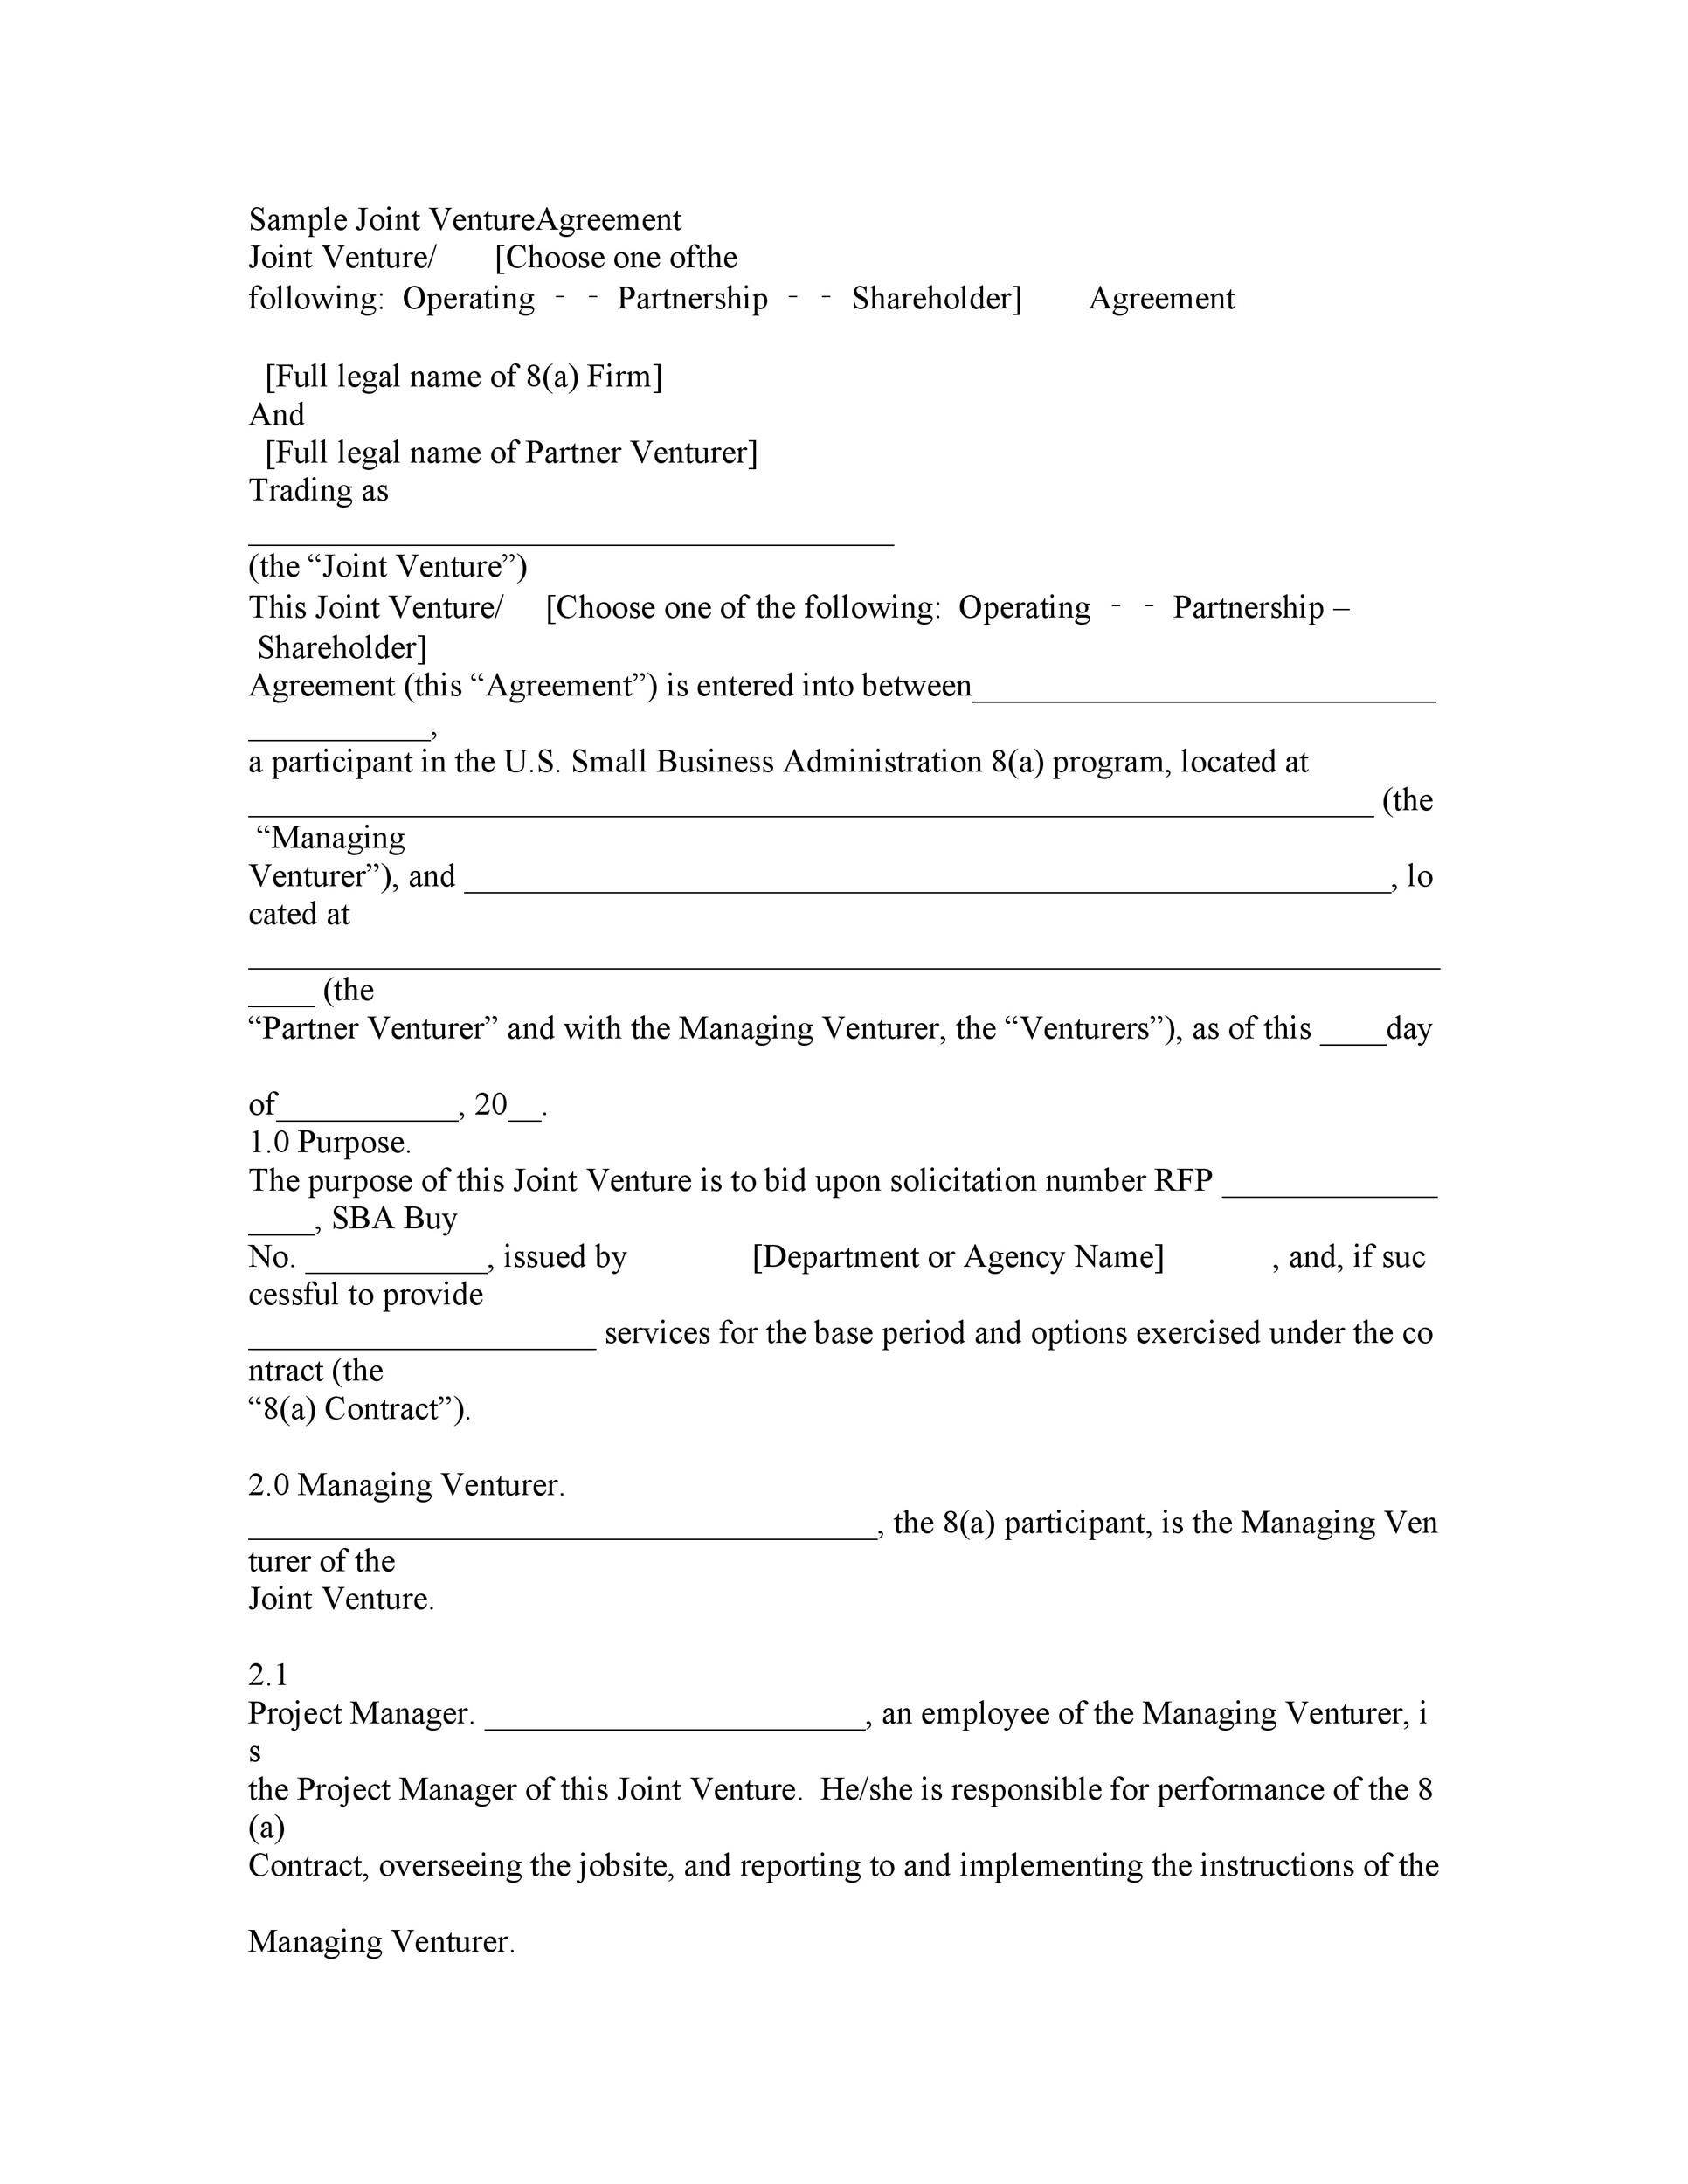 Simple Joint Venture Agreement Templates Pdf Doc  Template Lab